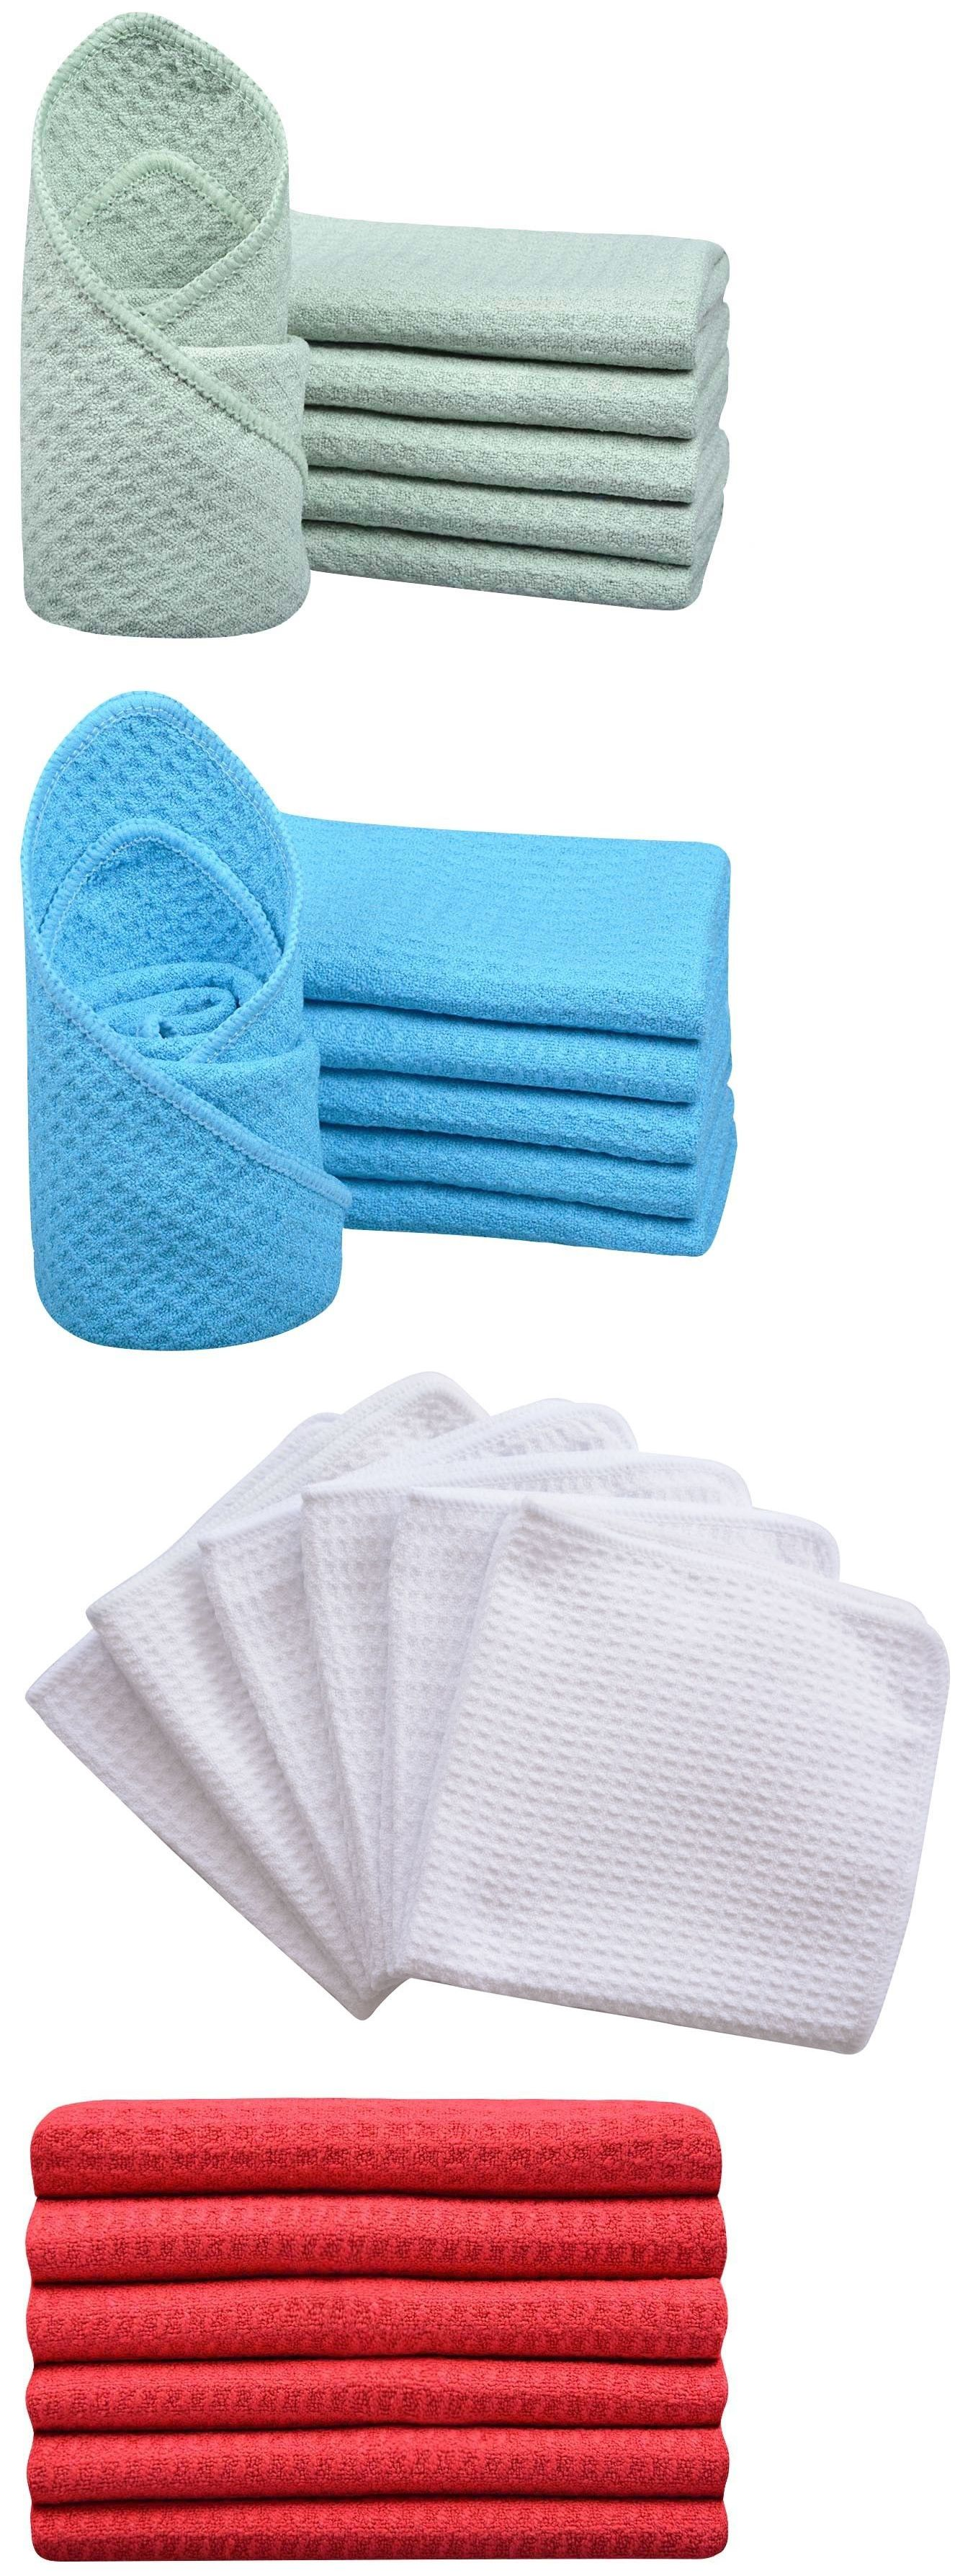 Cleaning Towels And Cloths 29509 Microfiber Waffle Weave Kitchen